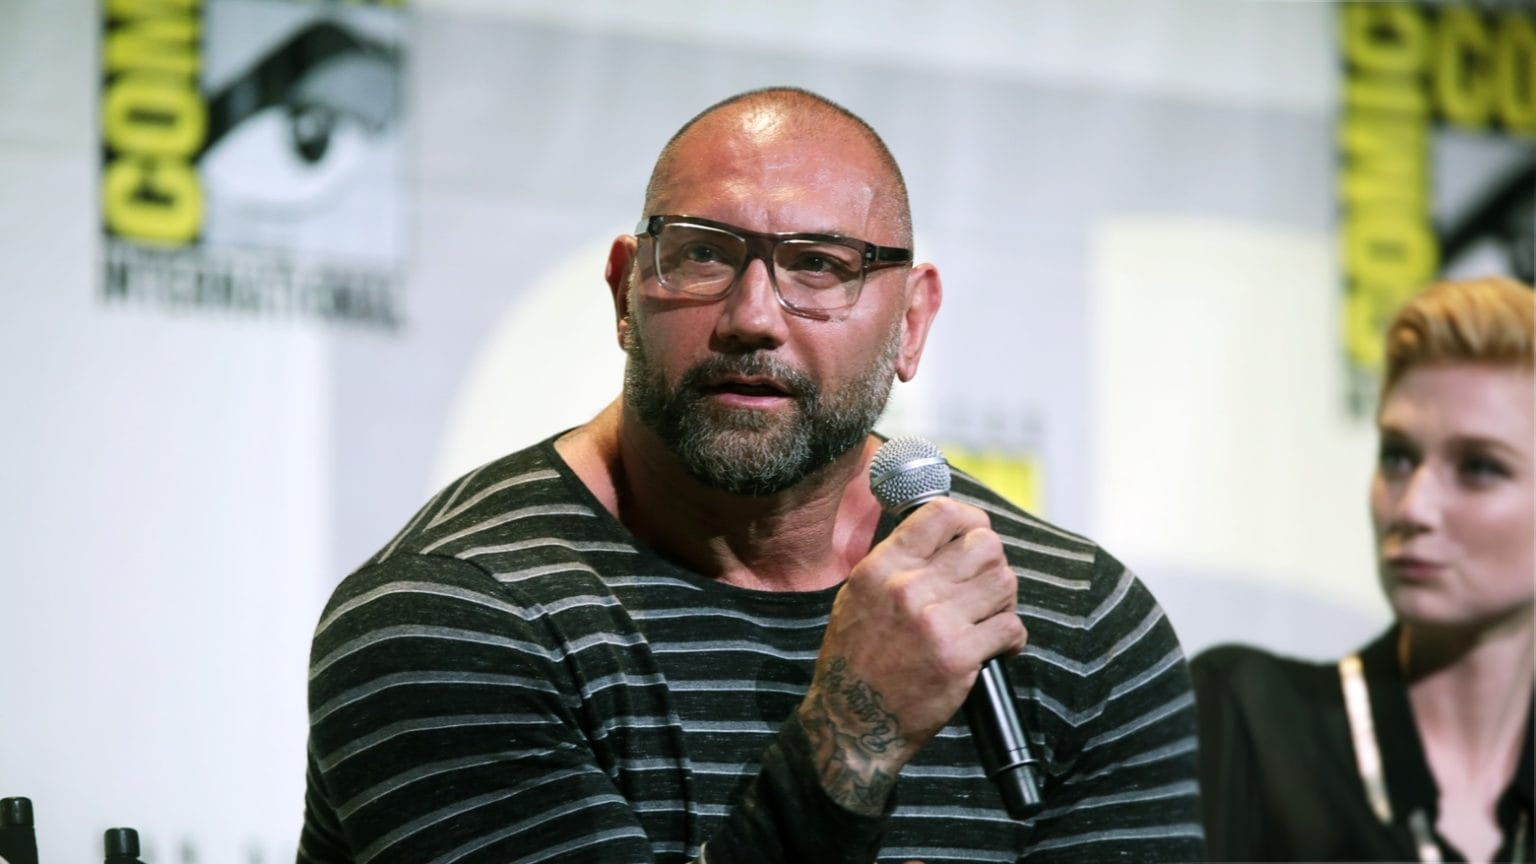 Dave Bautista speaking at the 2016 San Diego Comic Con